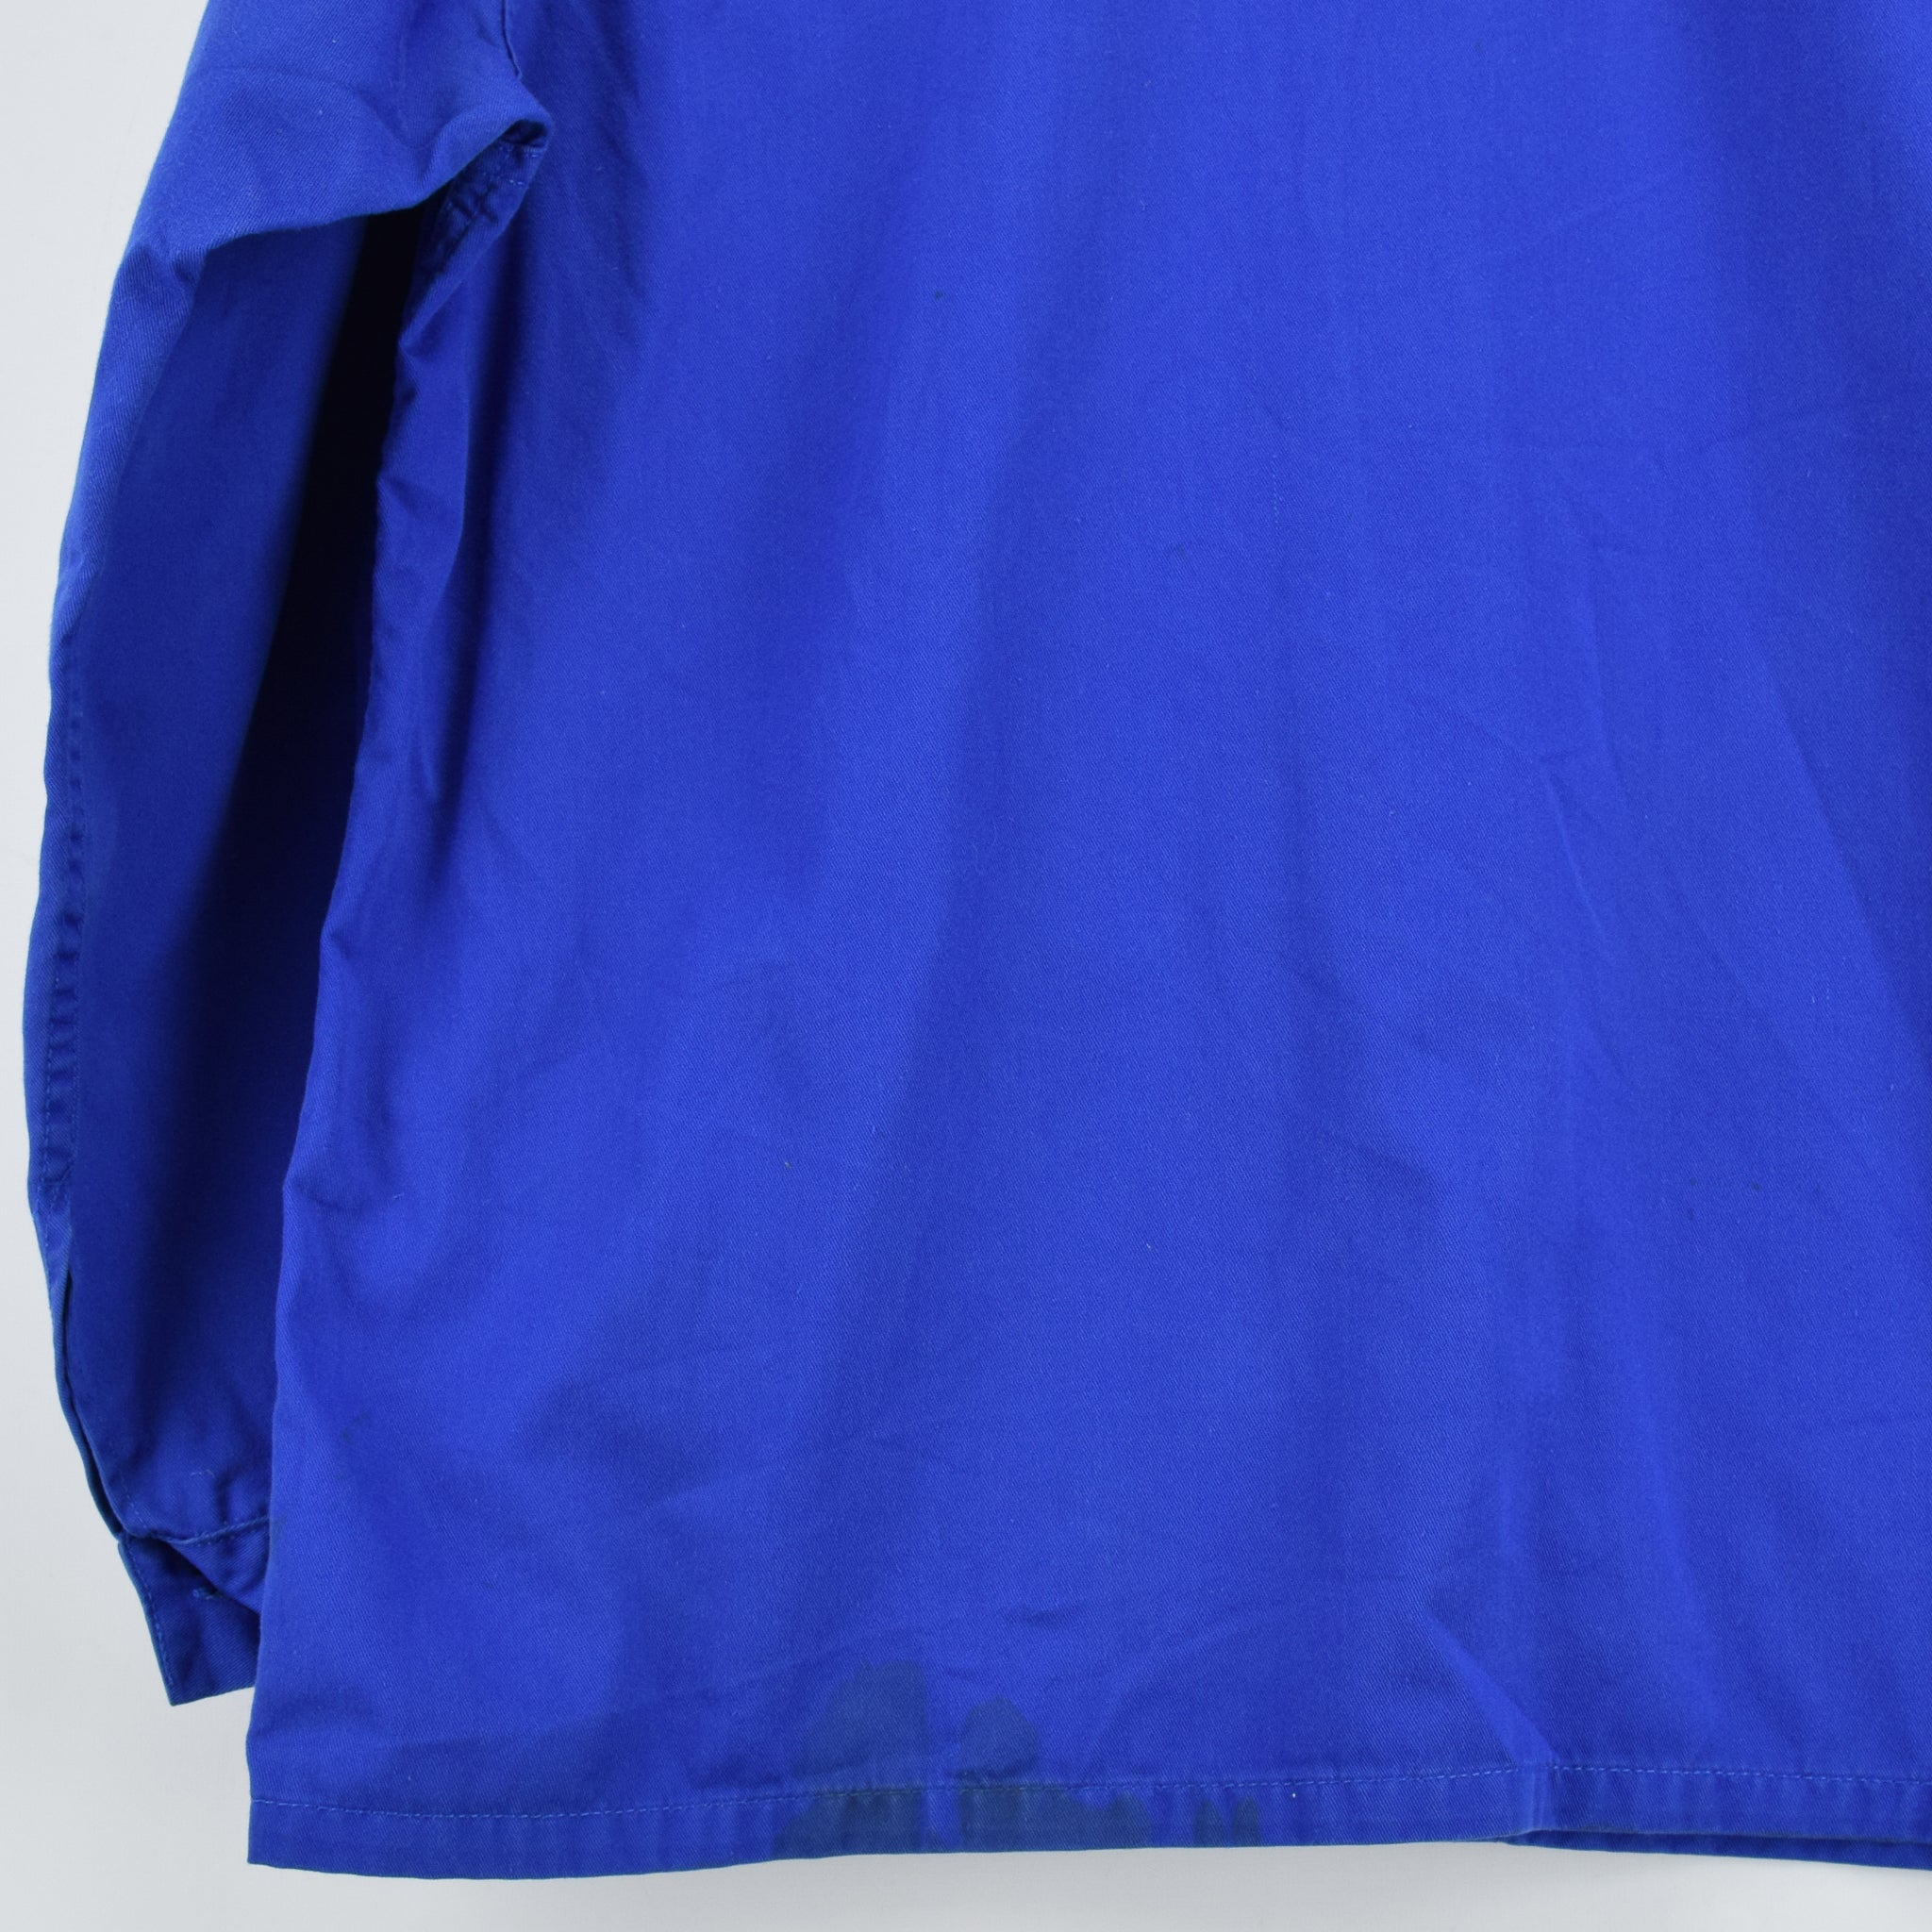 Vintage Bright Blue French Style Worker Sanforized Cotton Chore Jacket L back hem